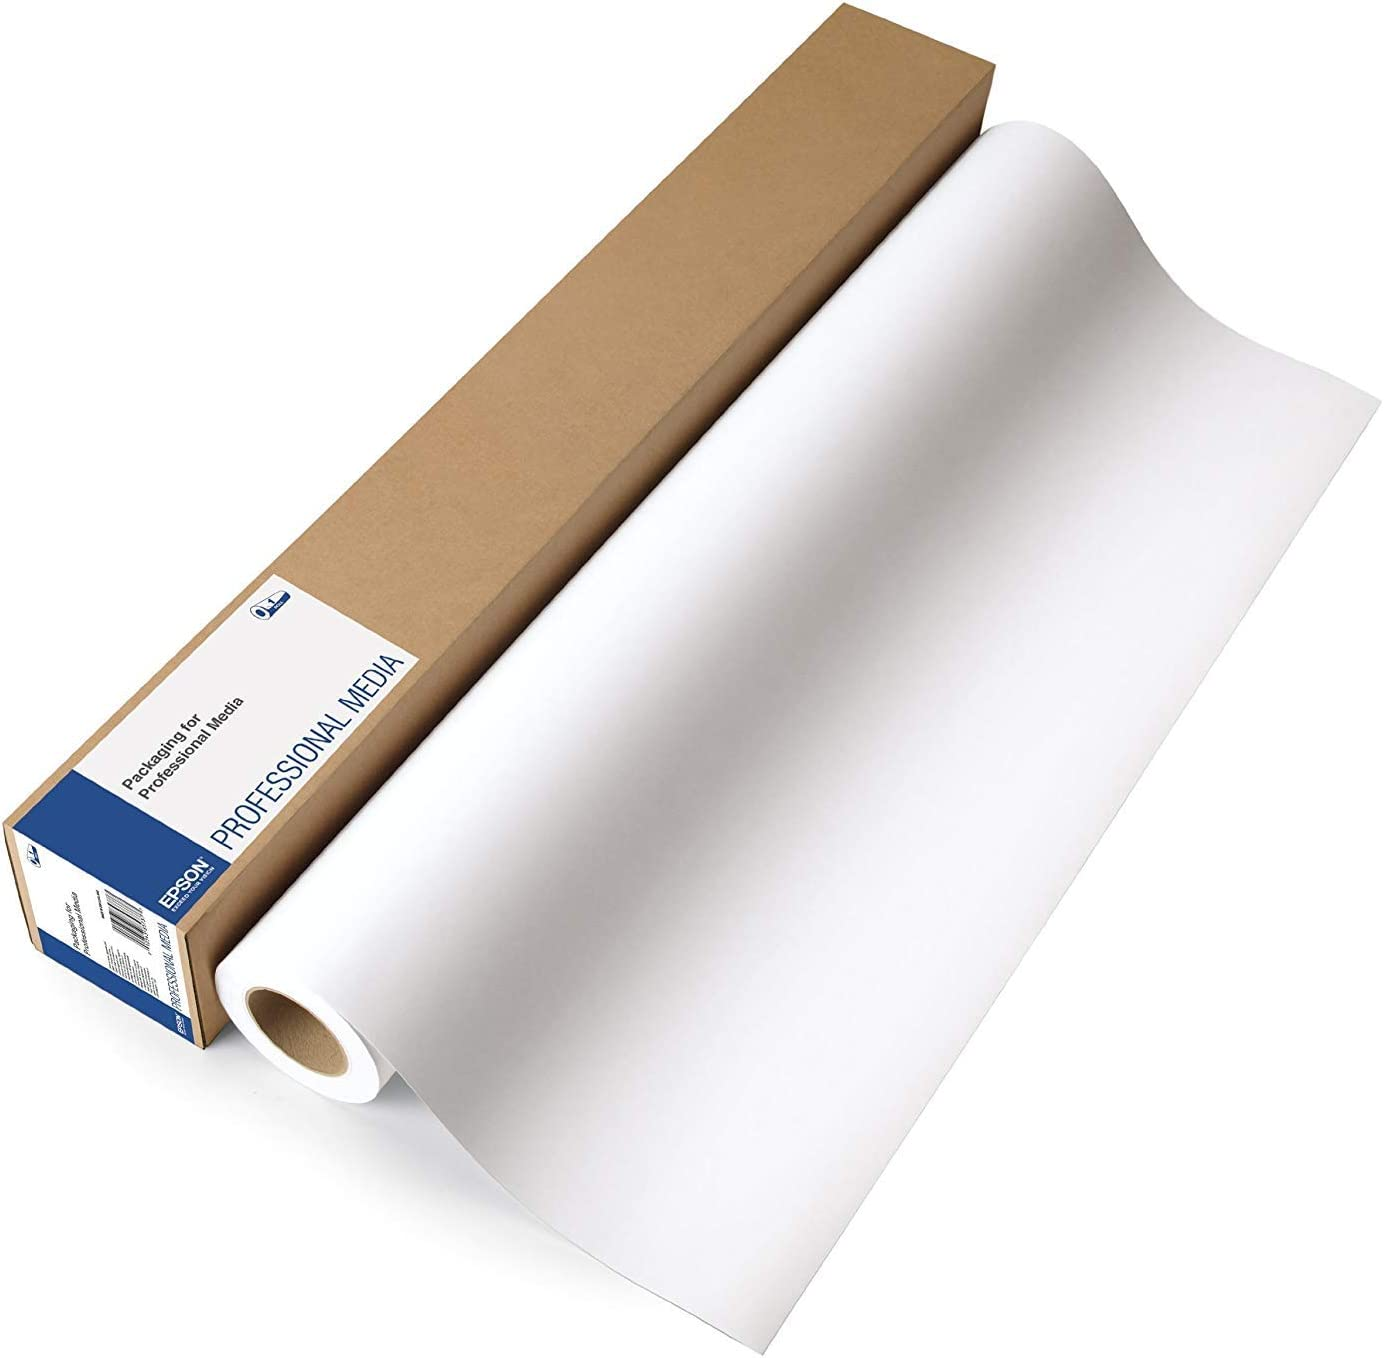 Epson C13S450063 8-Inch Surelab Pro-S Luster Media Paper Roll Pack of 2